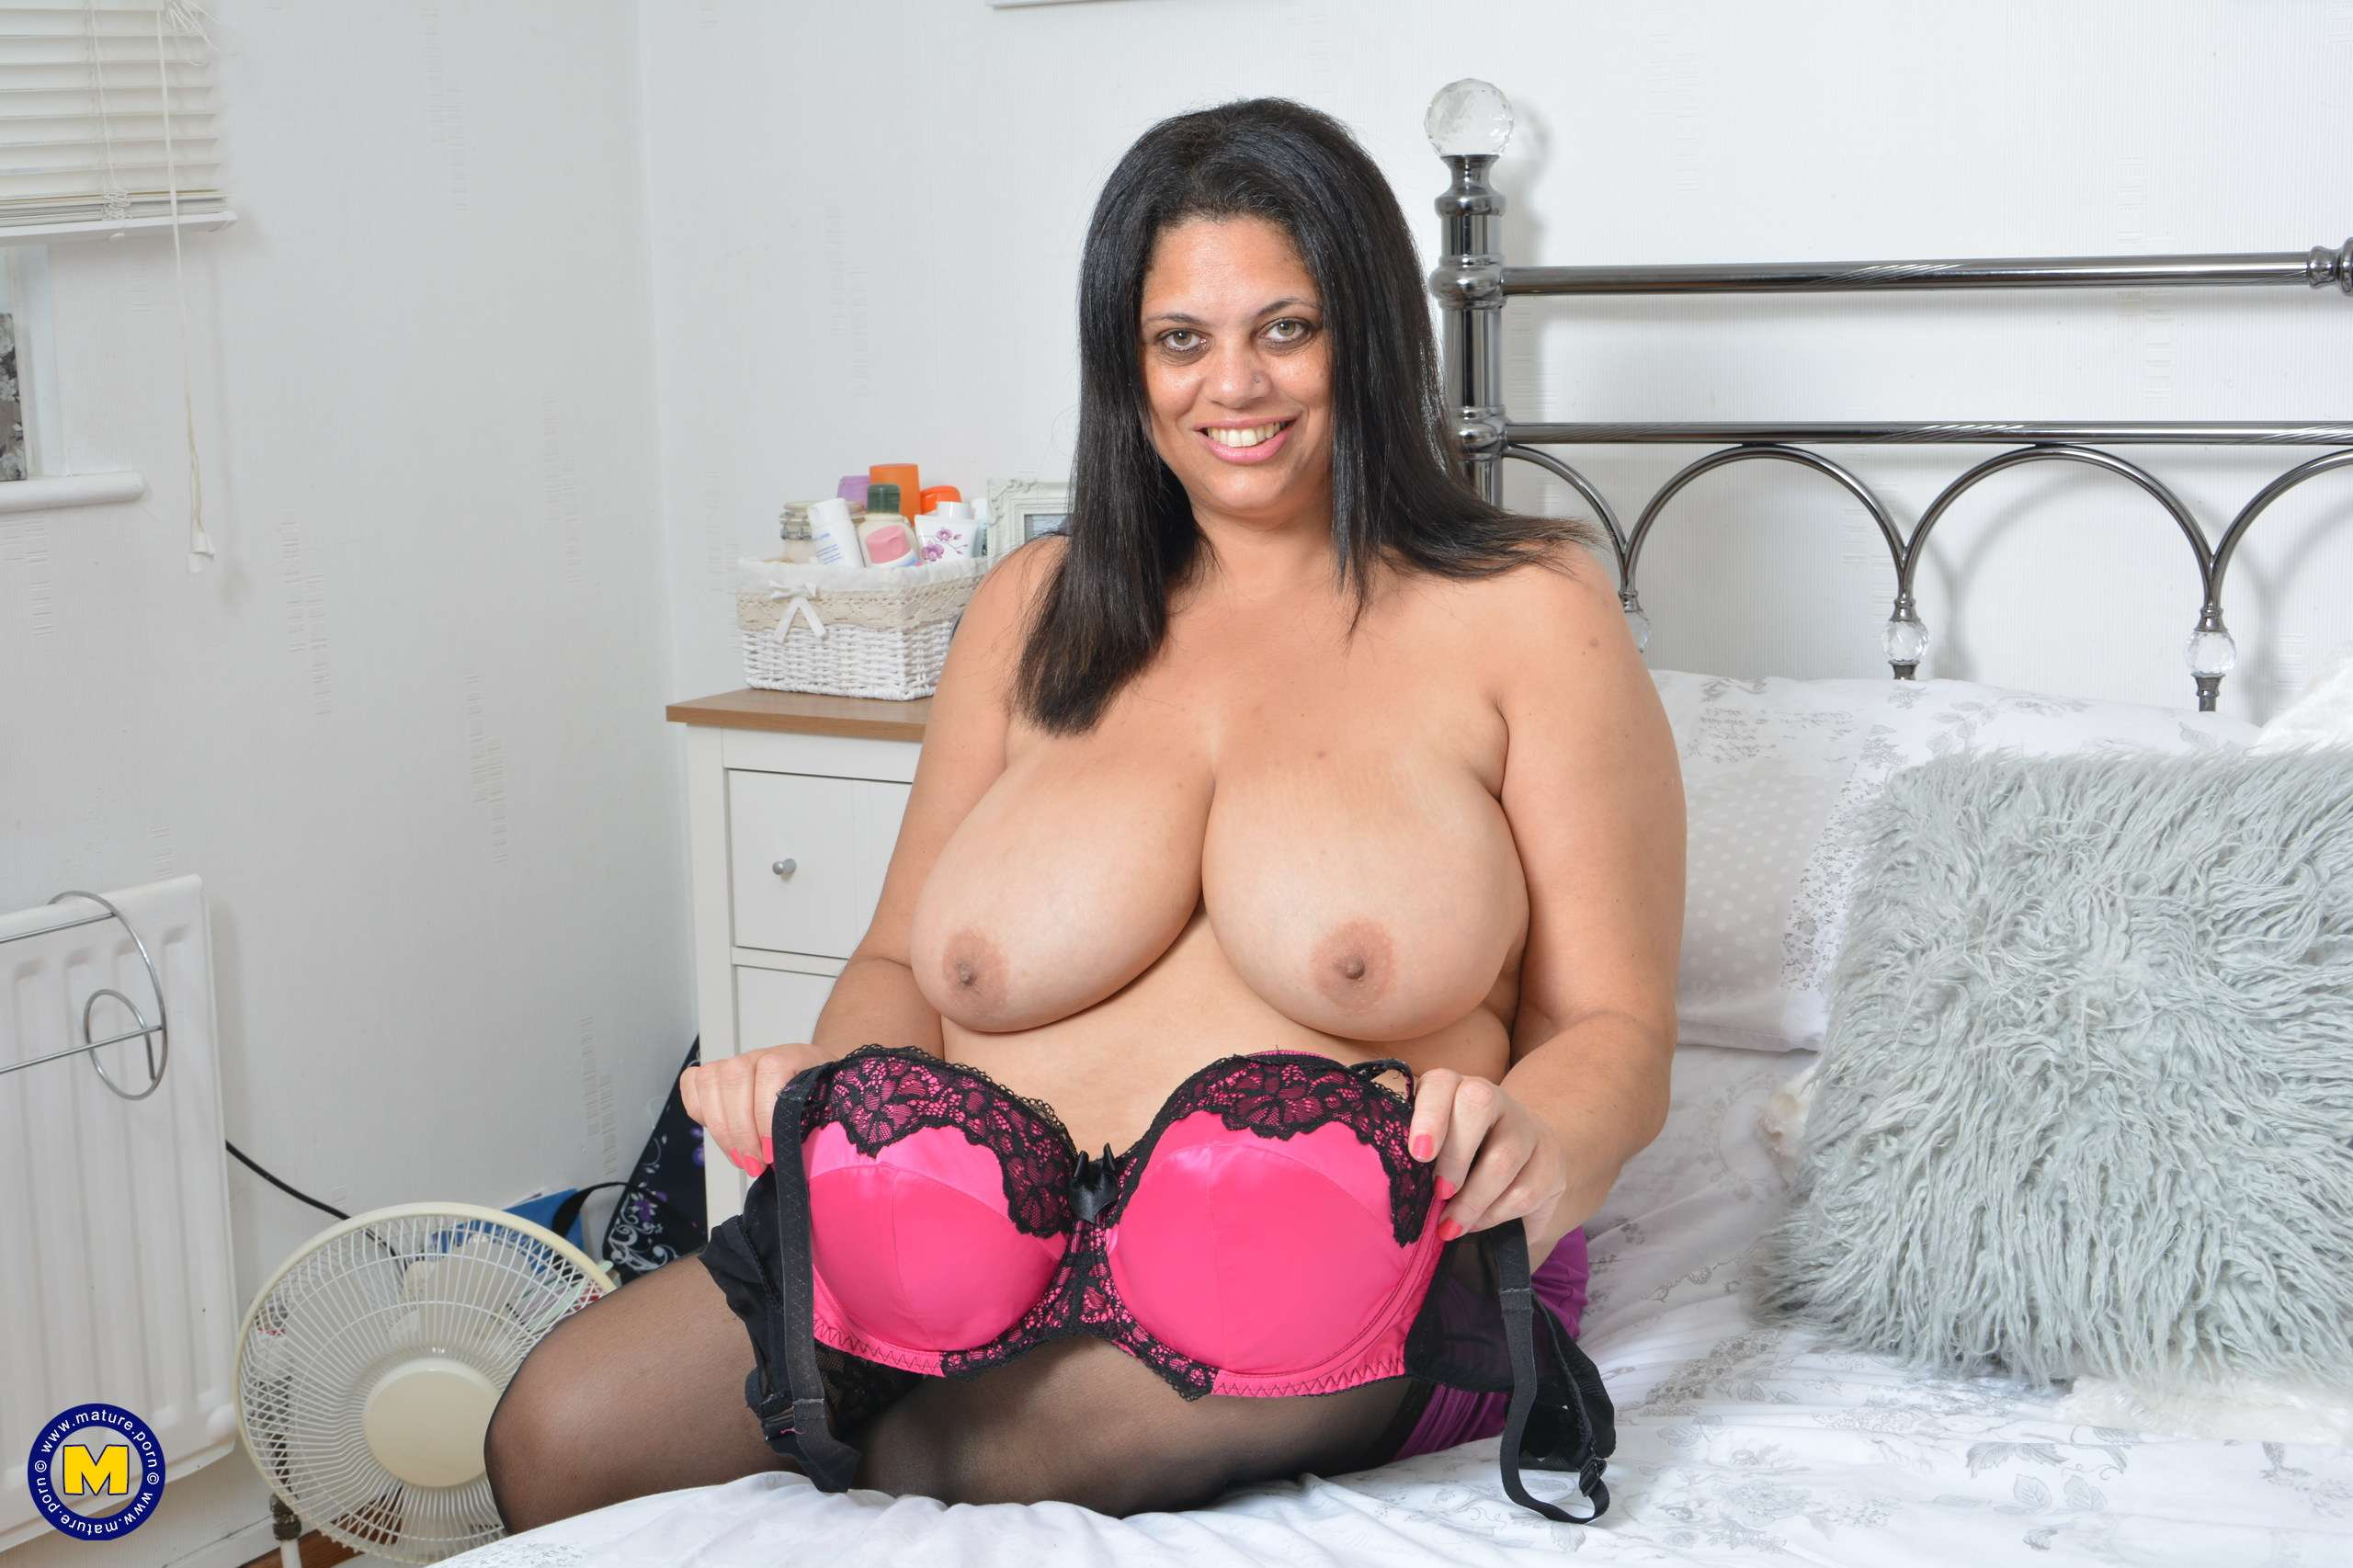 Naughty British BBW having fun with her toy